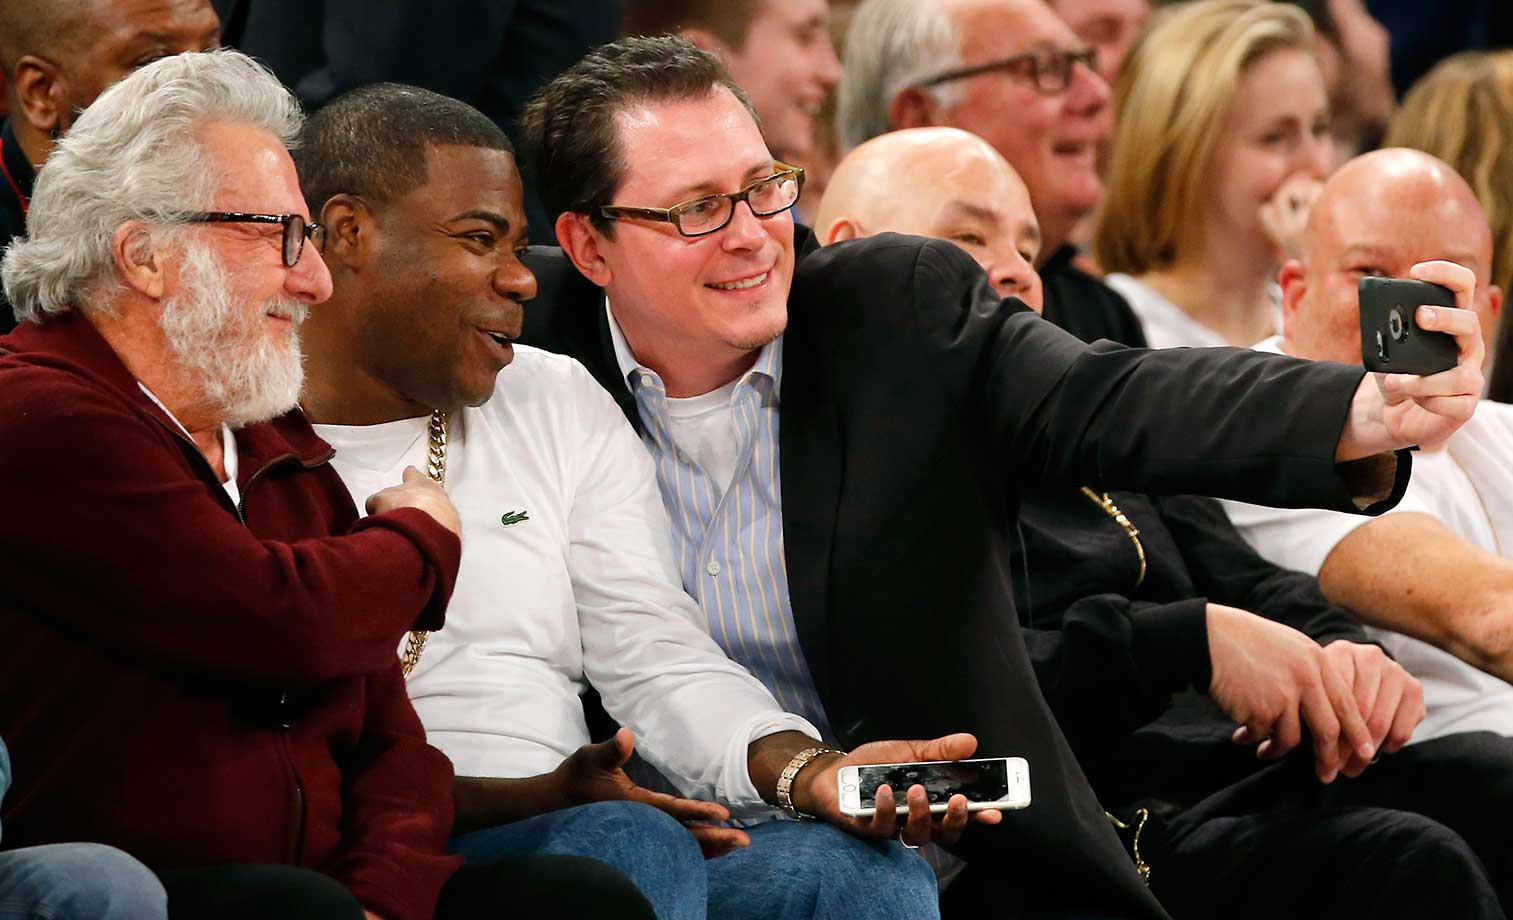 A fan snaps a selfie with comedian Tracy Morgan and actor Dustin Hoffman.